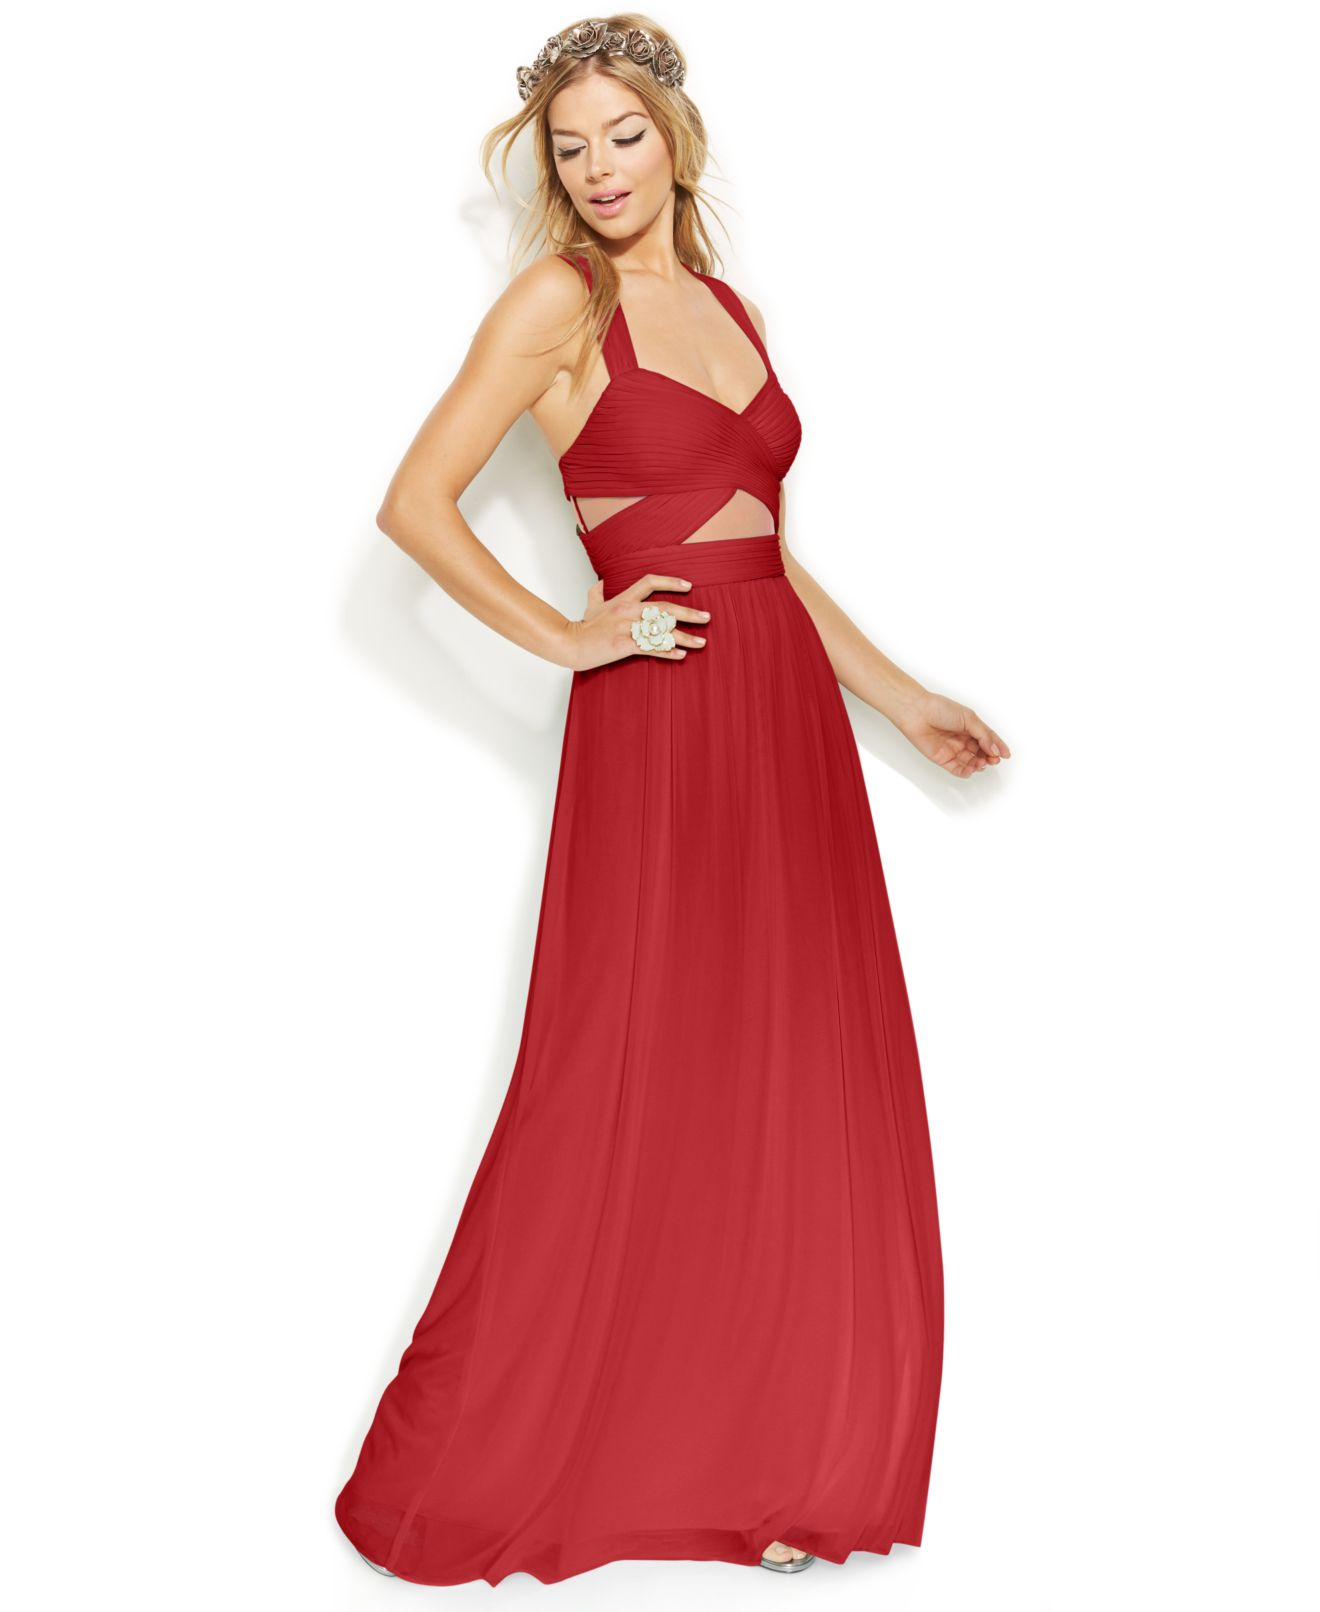 Red Strapless Sequin Dress